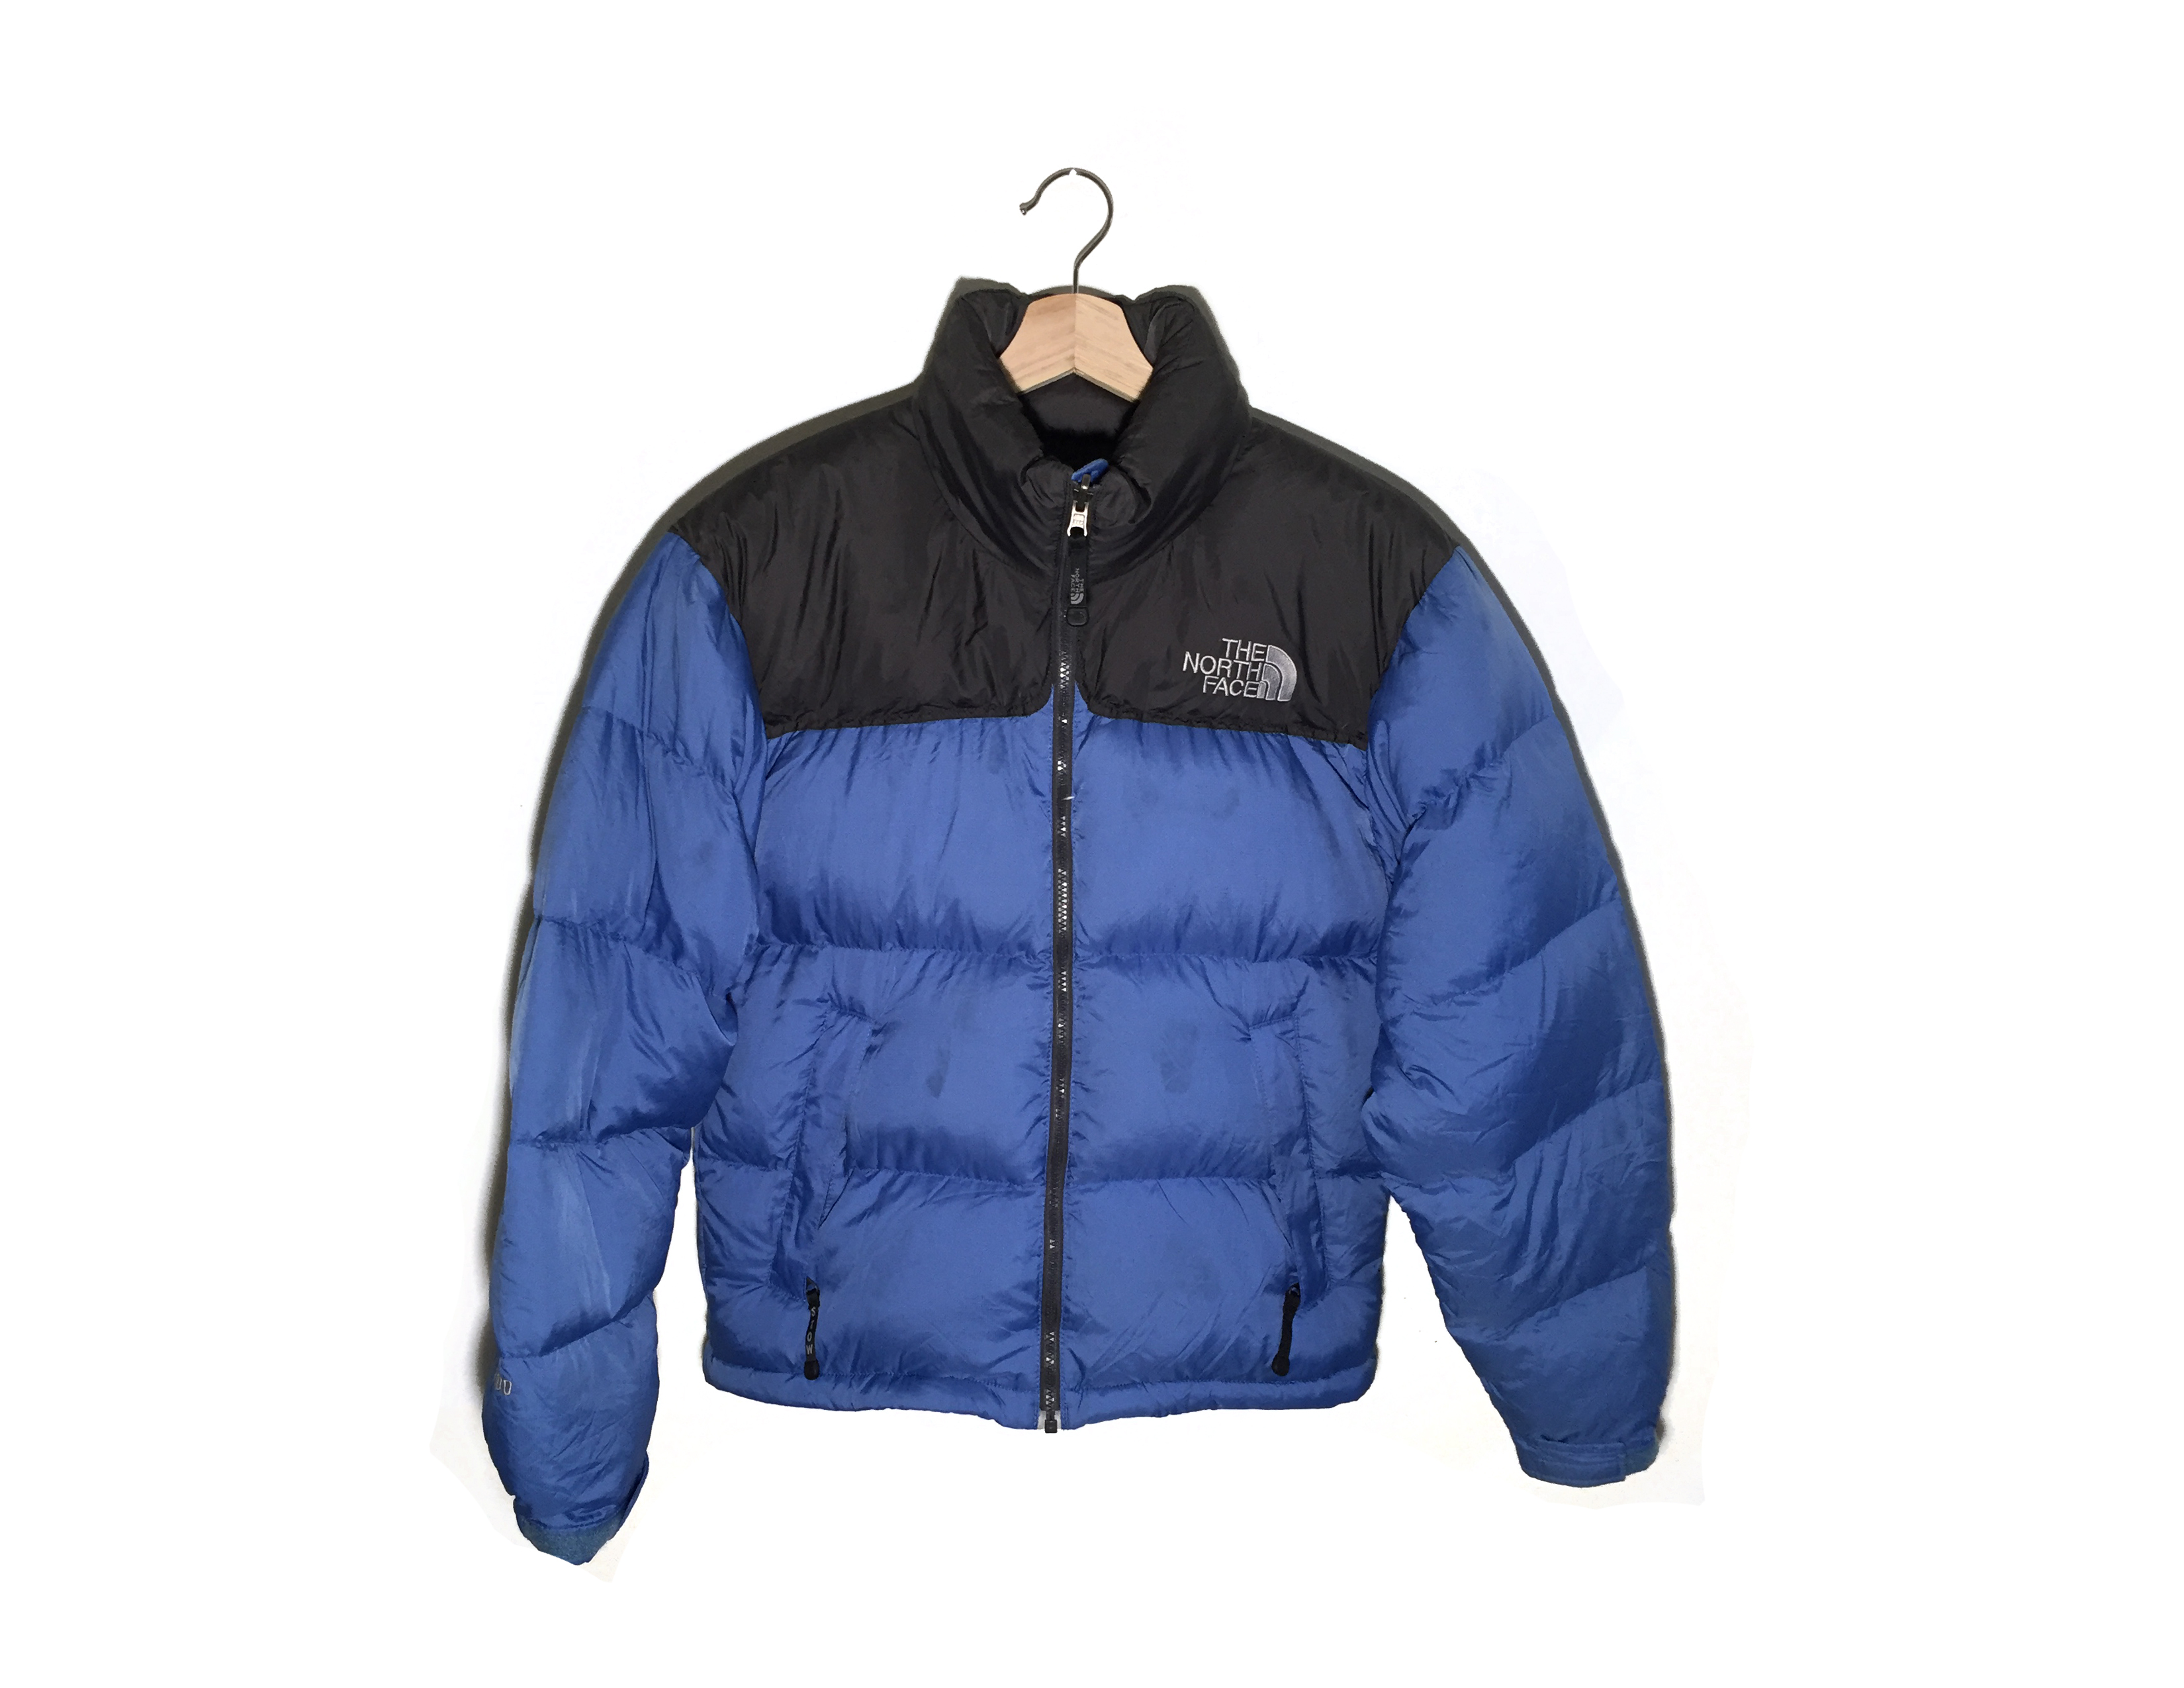 The North Face The North Face puffer jacket Blue from Farfetch:Linkshare:Affiliate:CPA:US:US | more